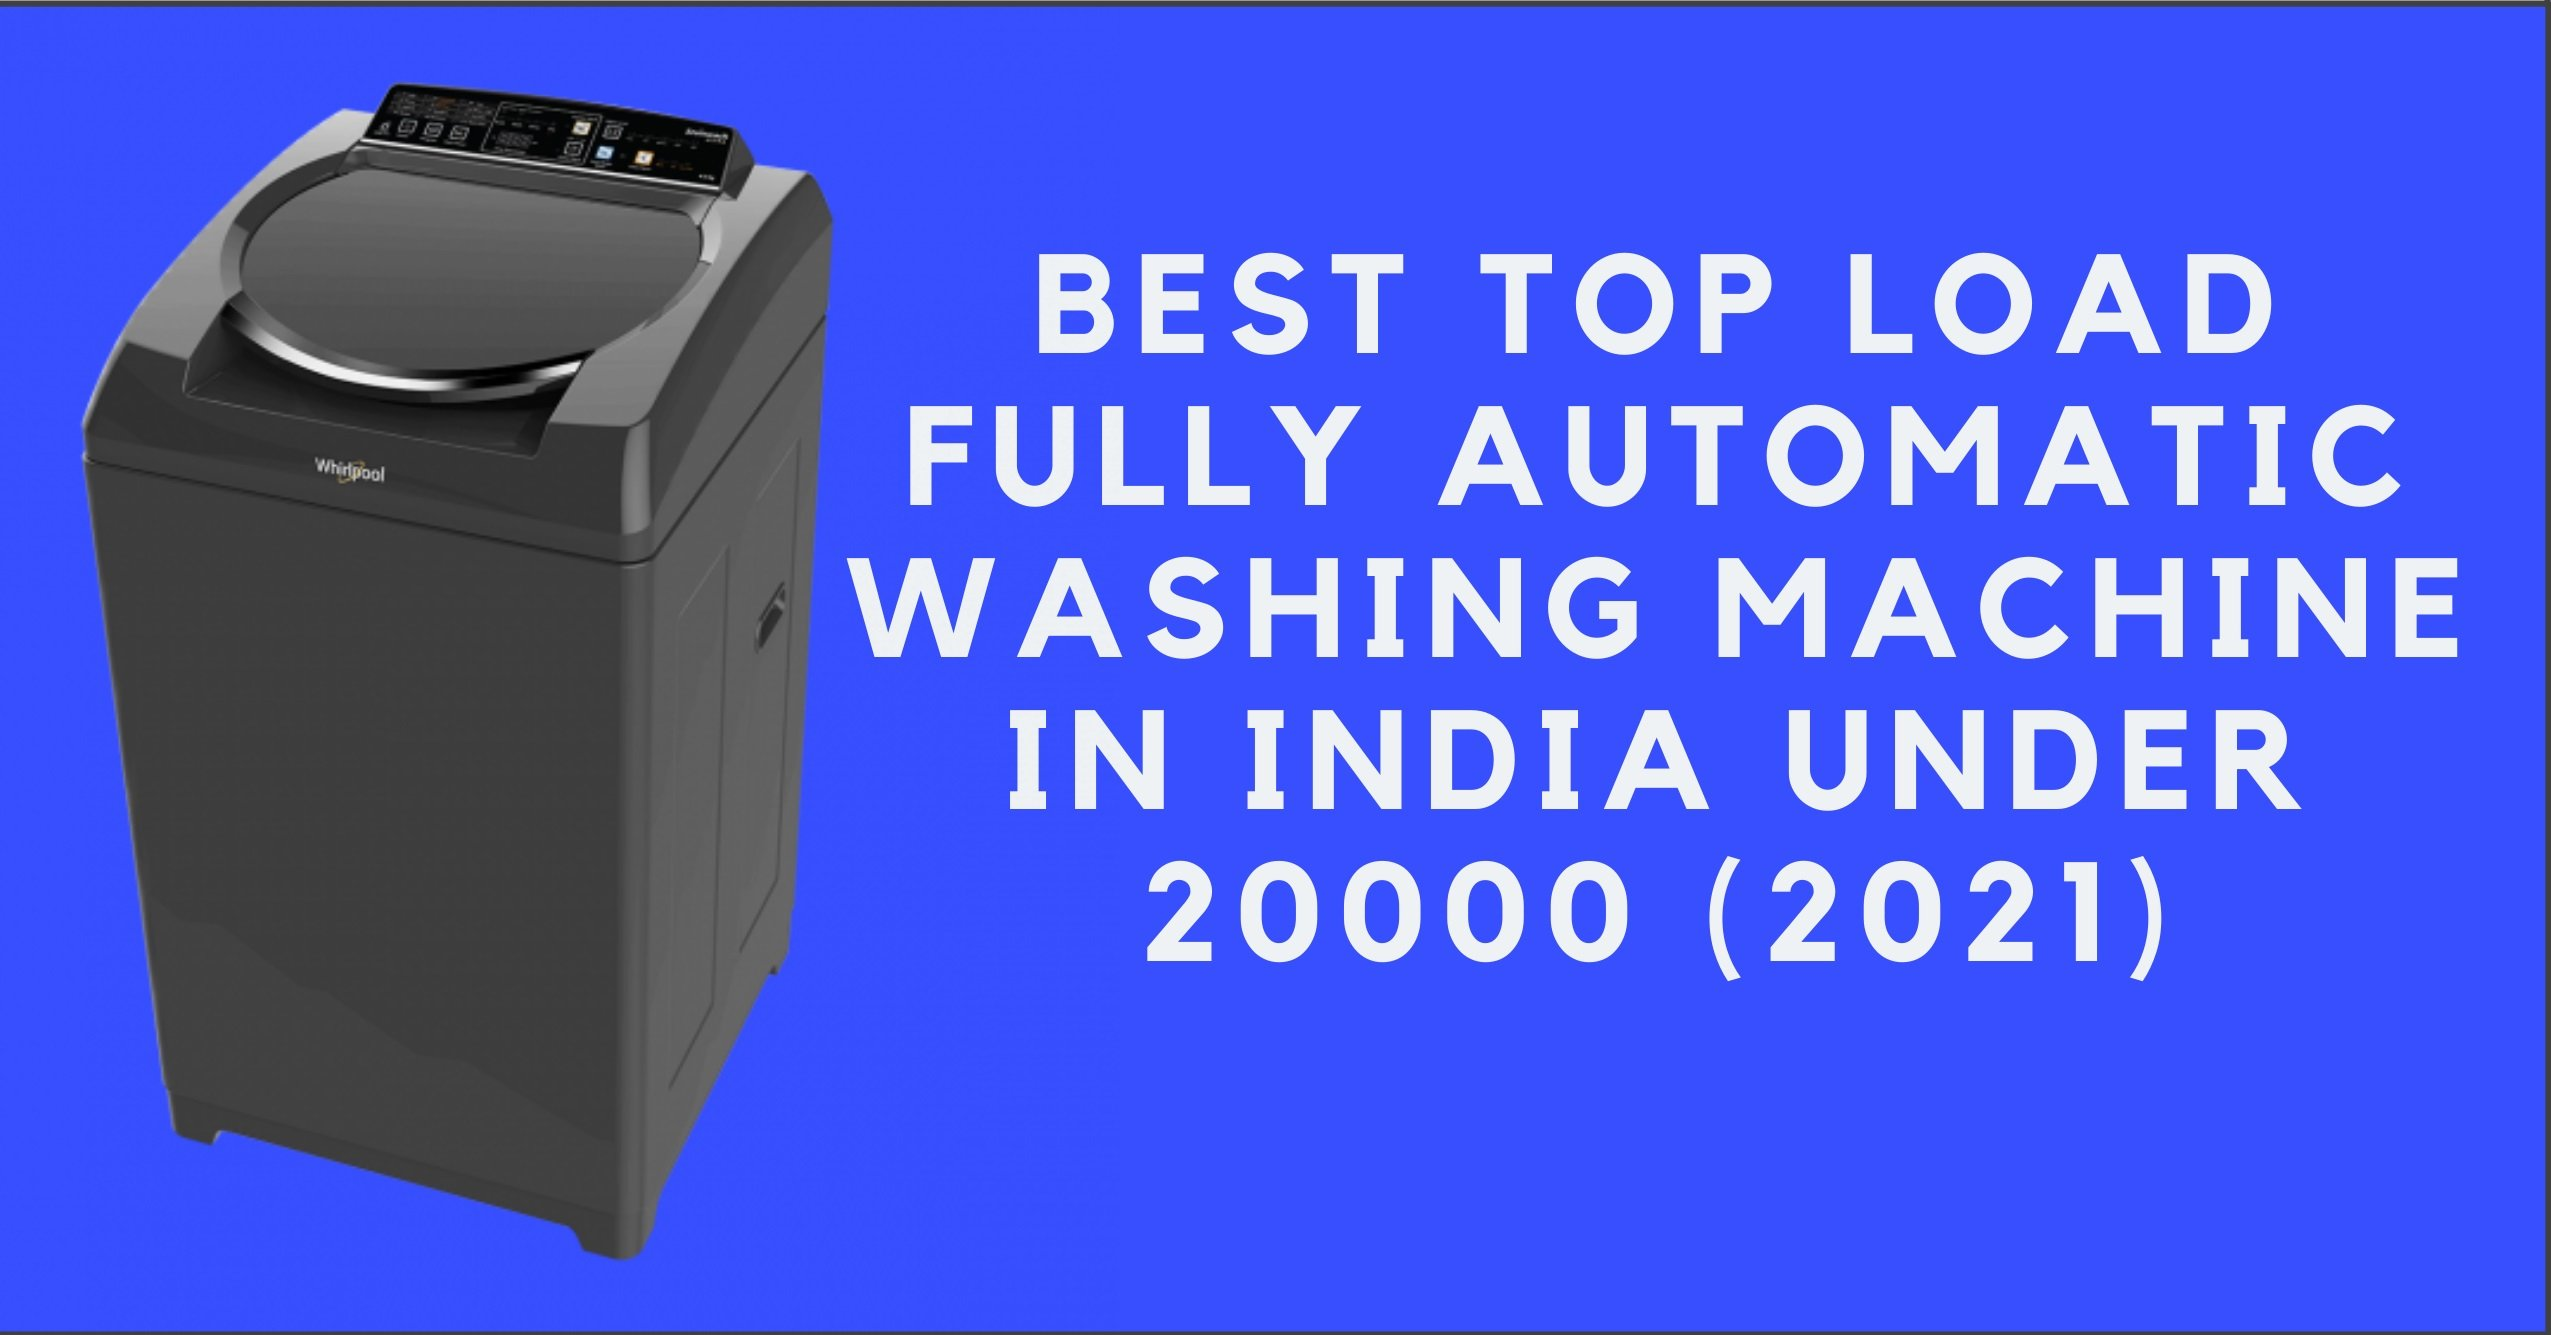 9 Best Top Load Fully Automatic Washing Machine in India under 20000 (2021)